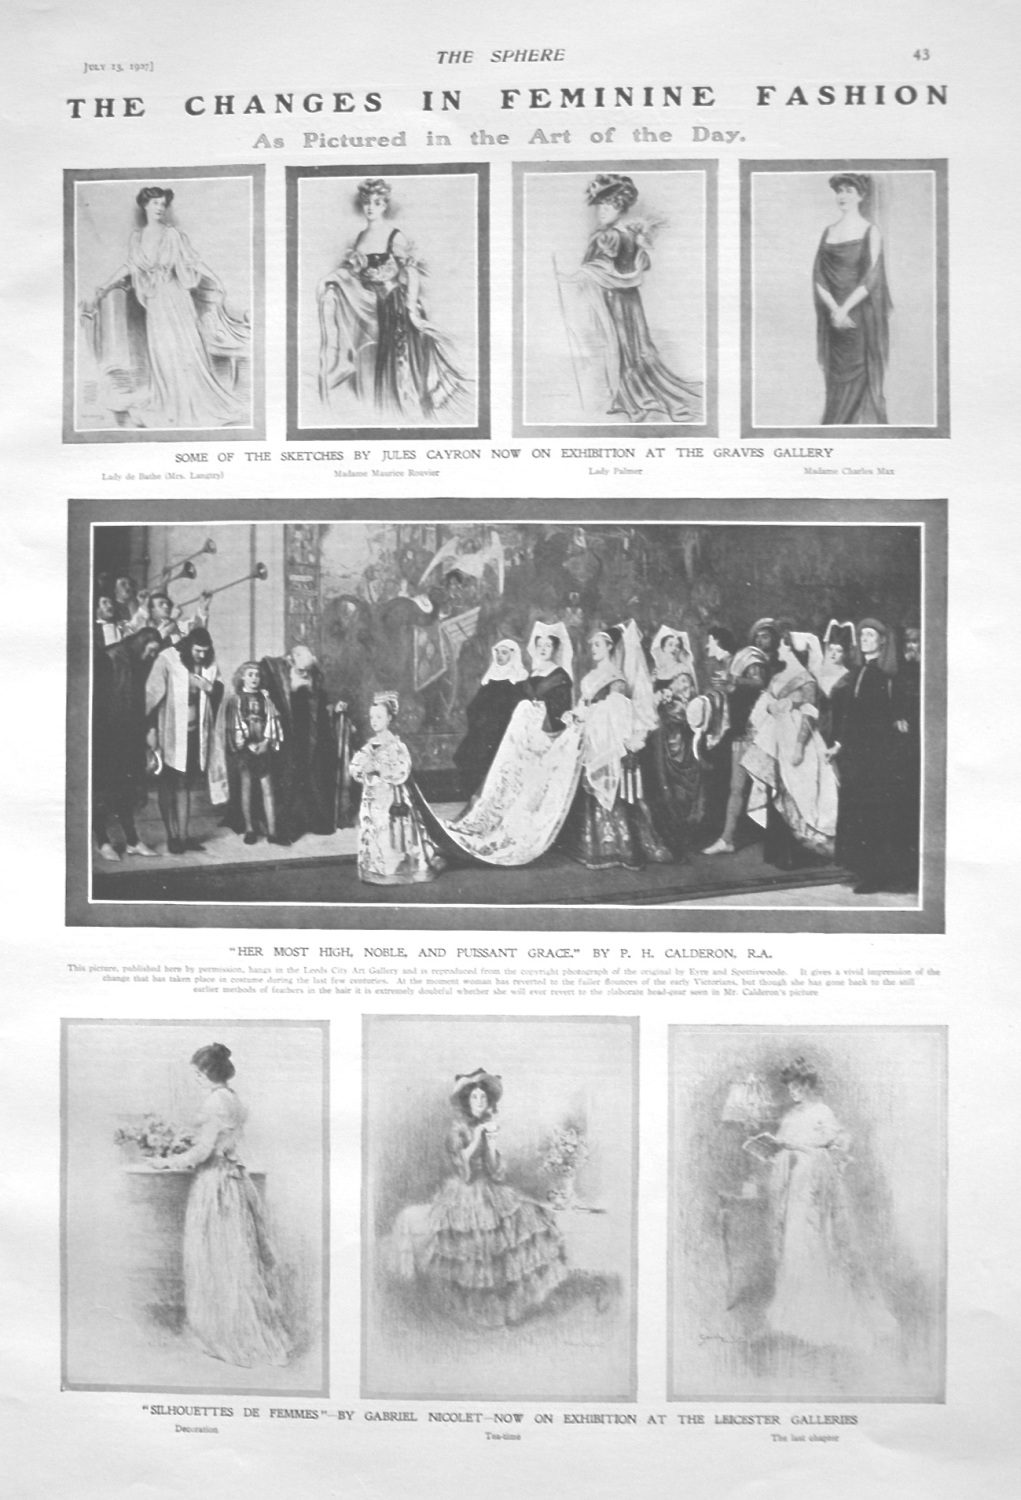 Changes in Feminine Fashion. As Pictured in the Art of the Day. 1907